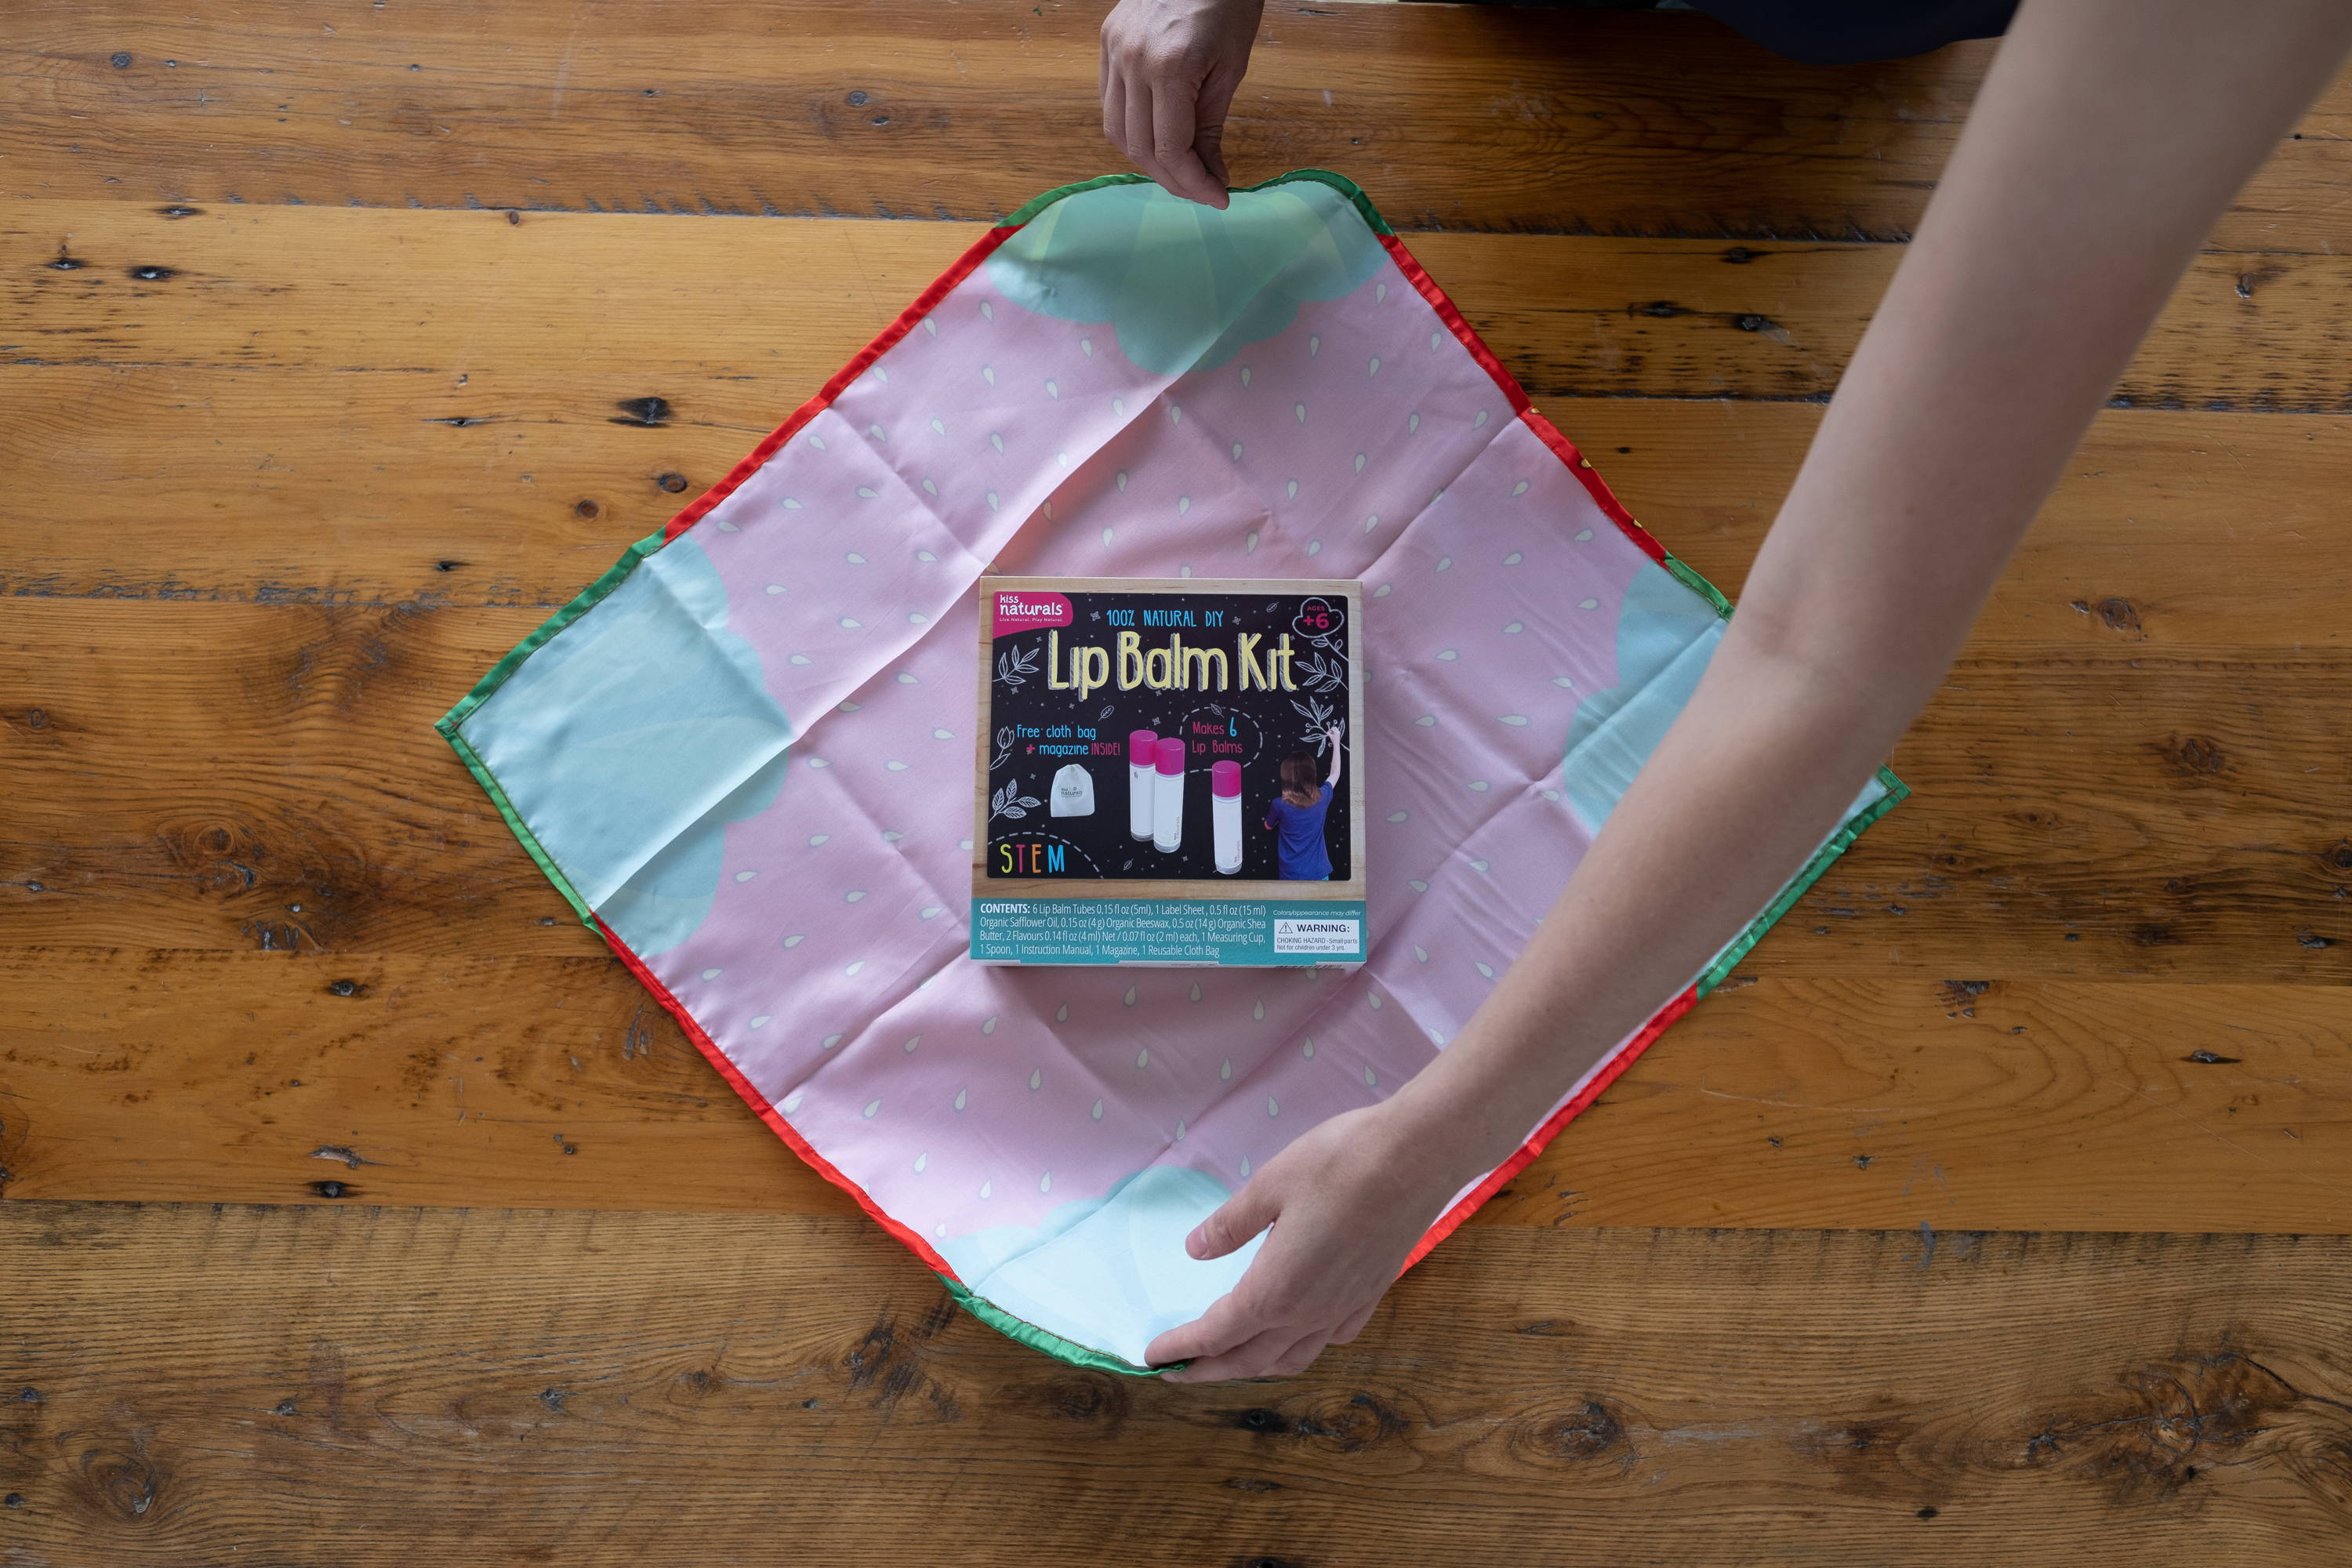 Lay kit on furoshiki gift wrapping cloth. Cloth should be perpendicular to kit.